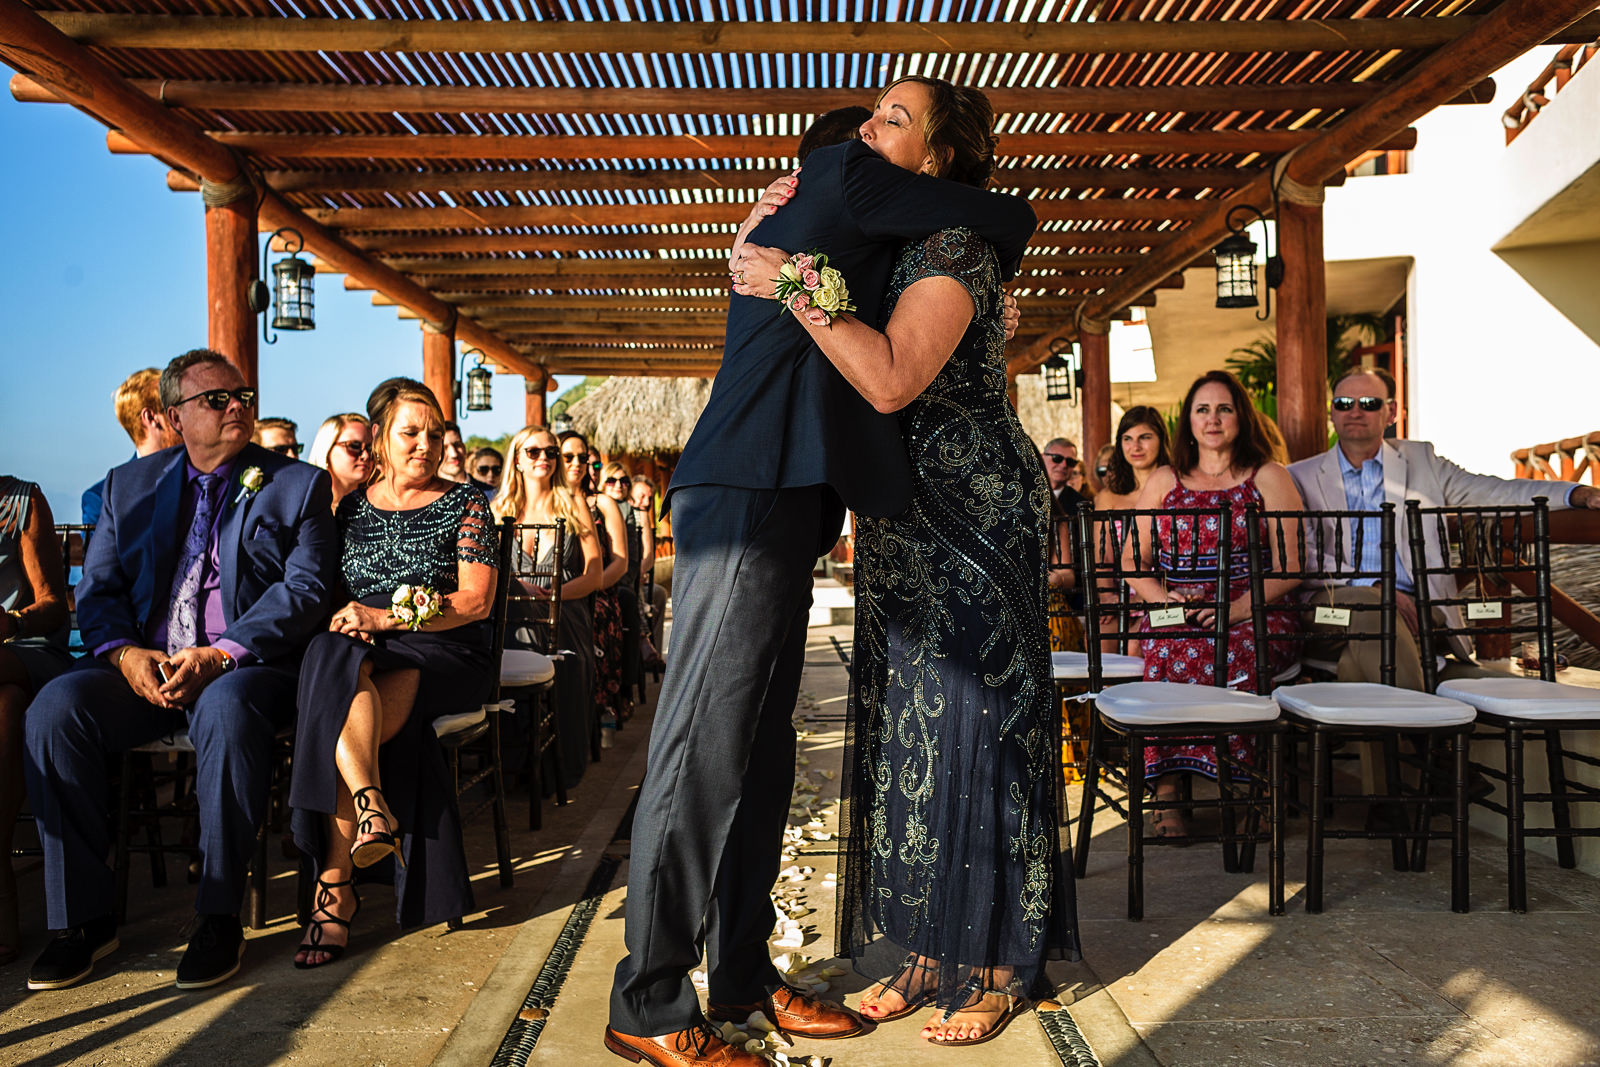 groom-mother-down-aisle-ceremony-playa-fiesta-wedding.jpg